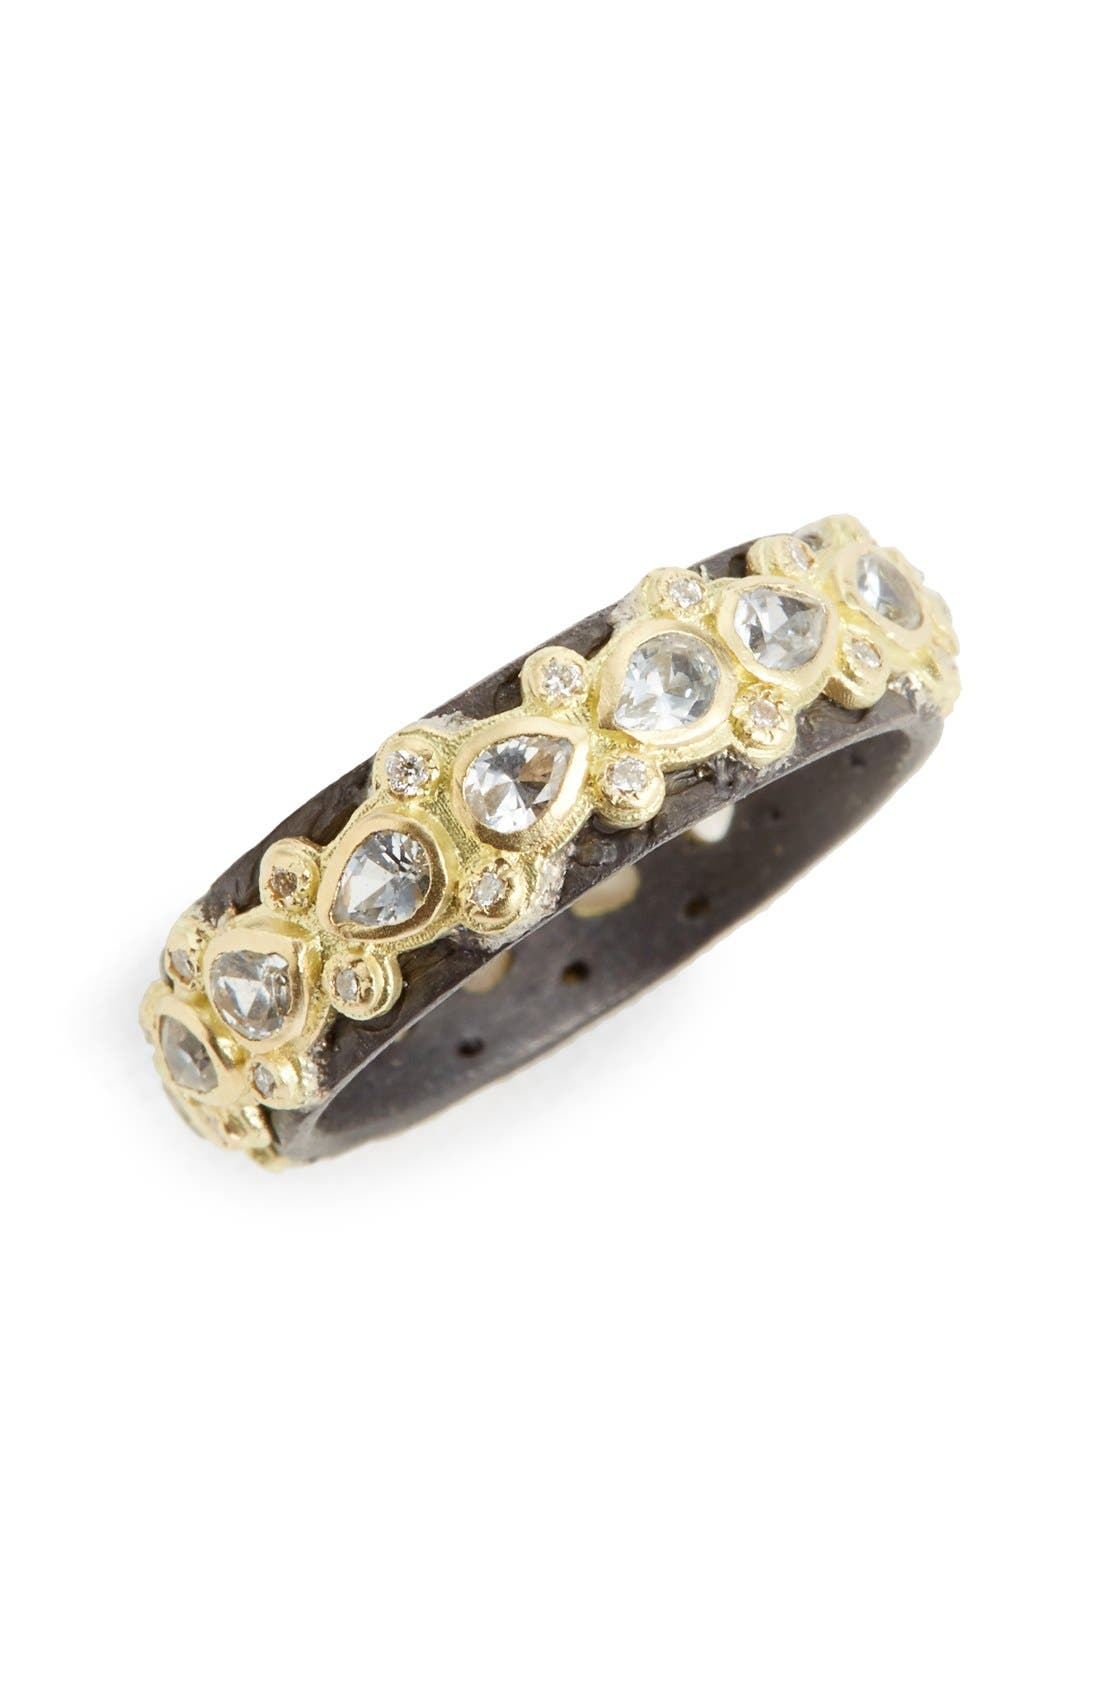 Old World Lacy Eternity Diamond & Sapphire Ring,                         Main,                         color, GOLD